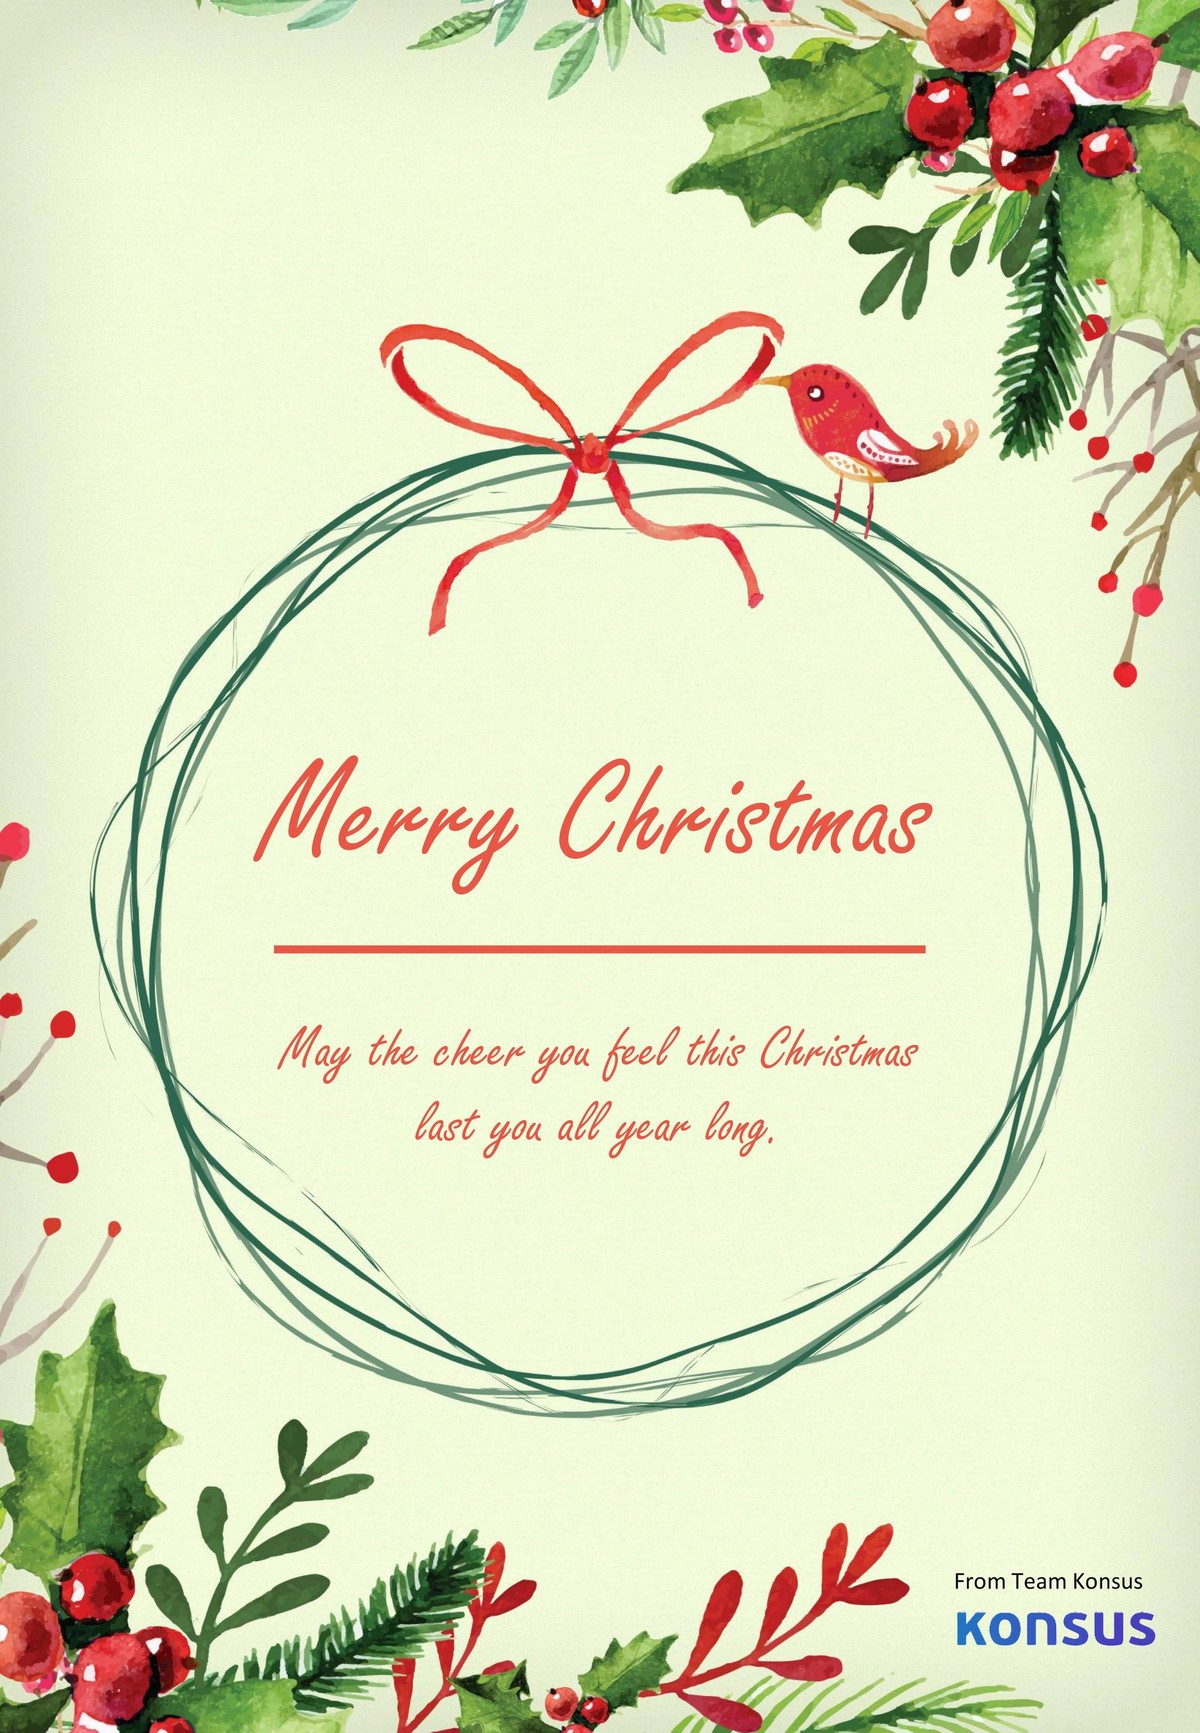 Merry Christmas Card 3